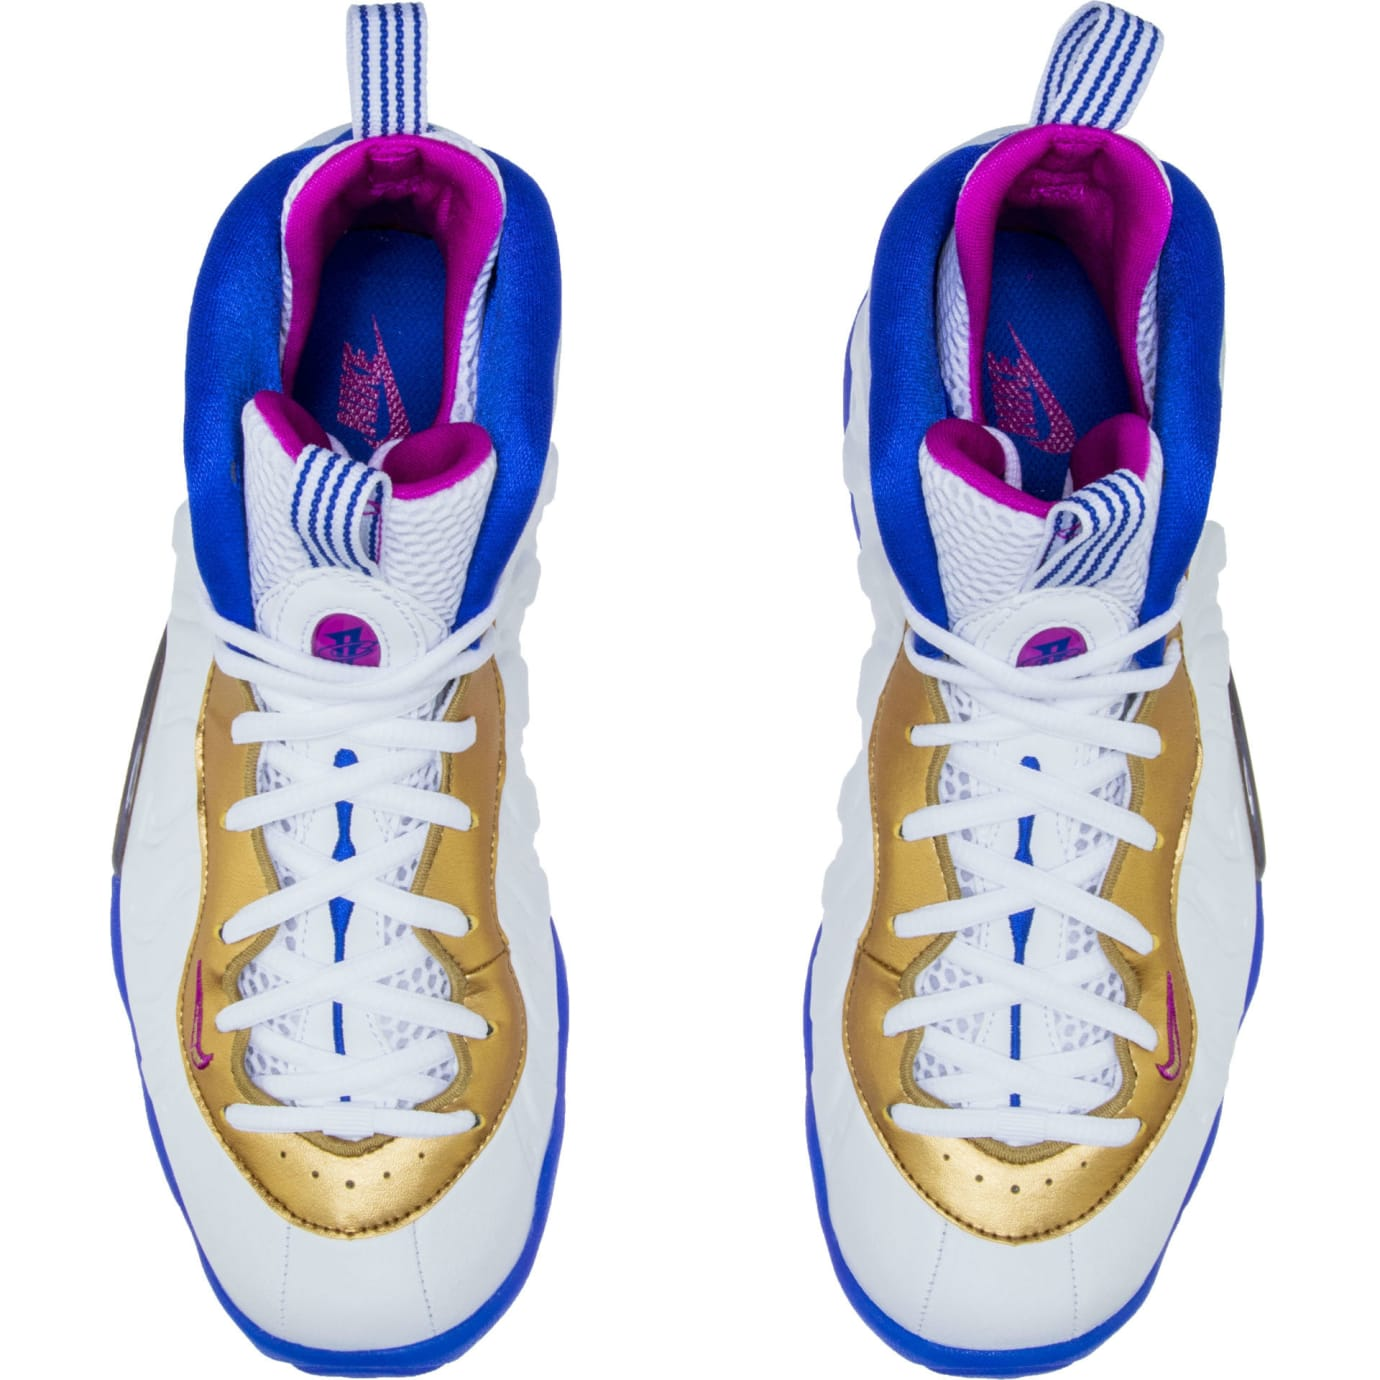 Nike Little Posite One White Fuchsia Blast Racer Blue Metallic Gold Release Date 644791-103 Top